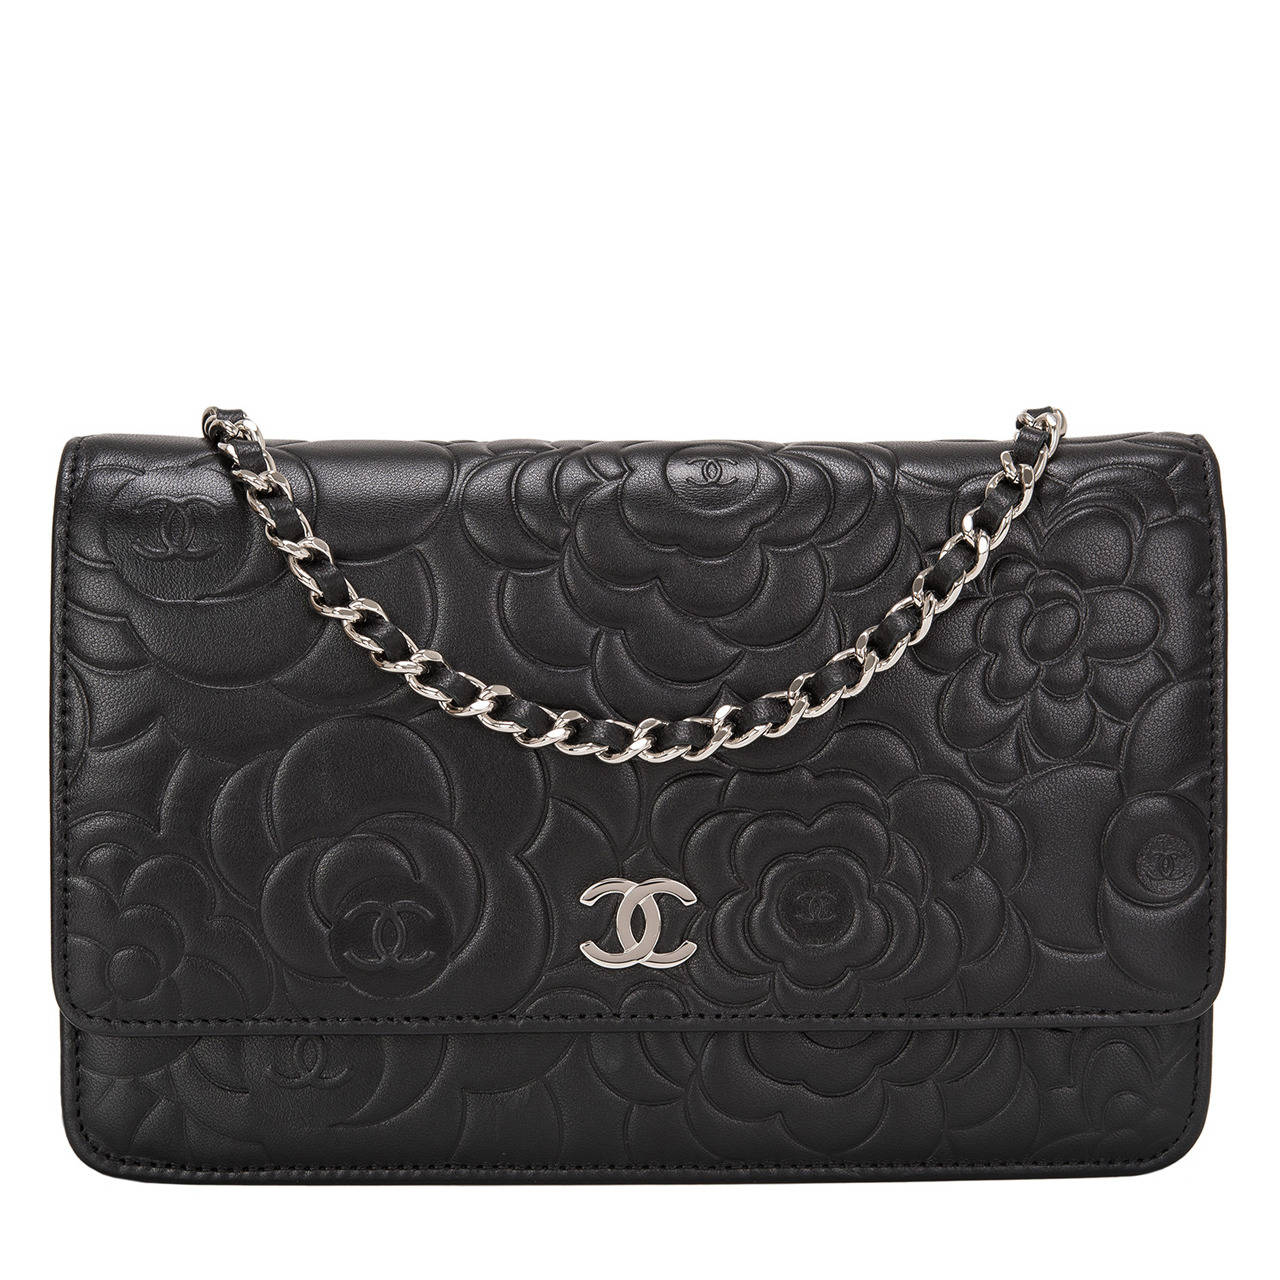 ee42cd31ca4b56 Chanel Black Camellia Wallet On Chain | Stanford Center for ...